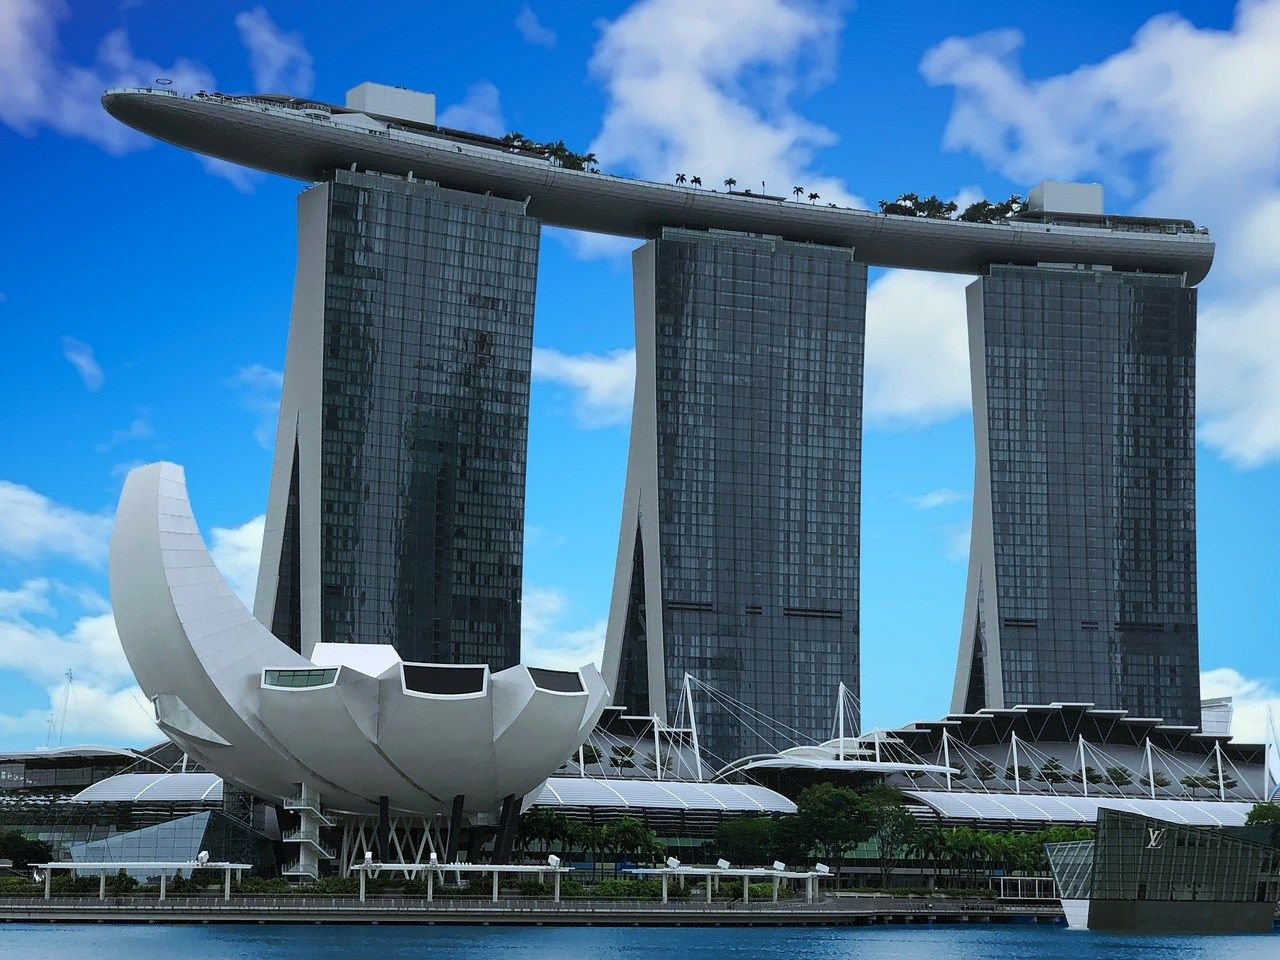 30925b485d68a01b41c54f6759de9e35 - Distance From Marina Bay Sands To Gardens By The Bay